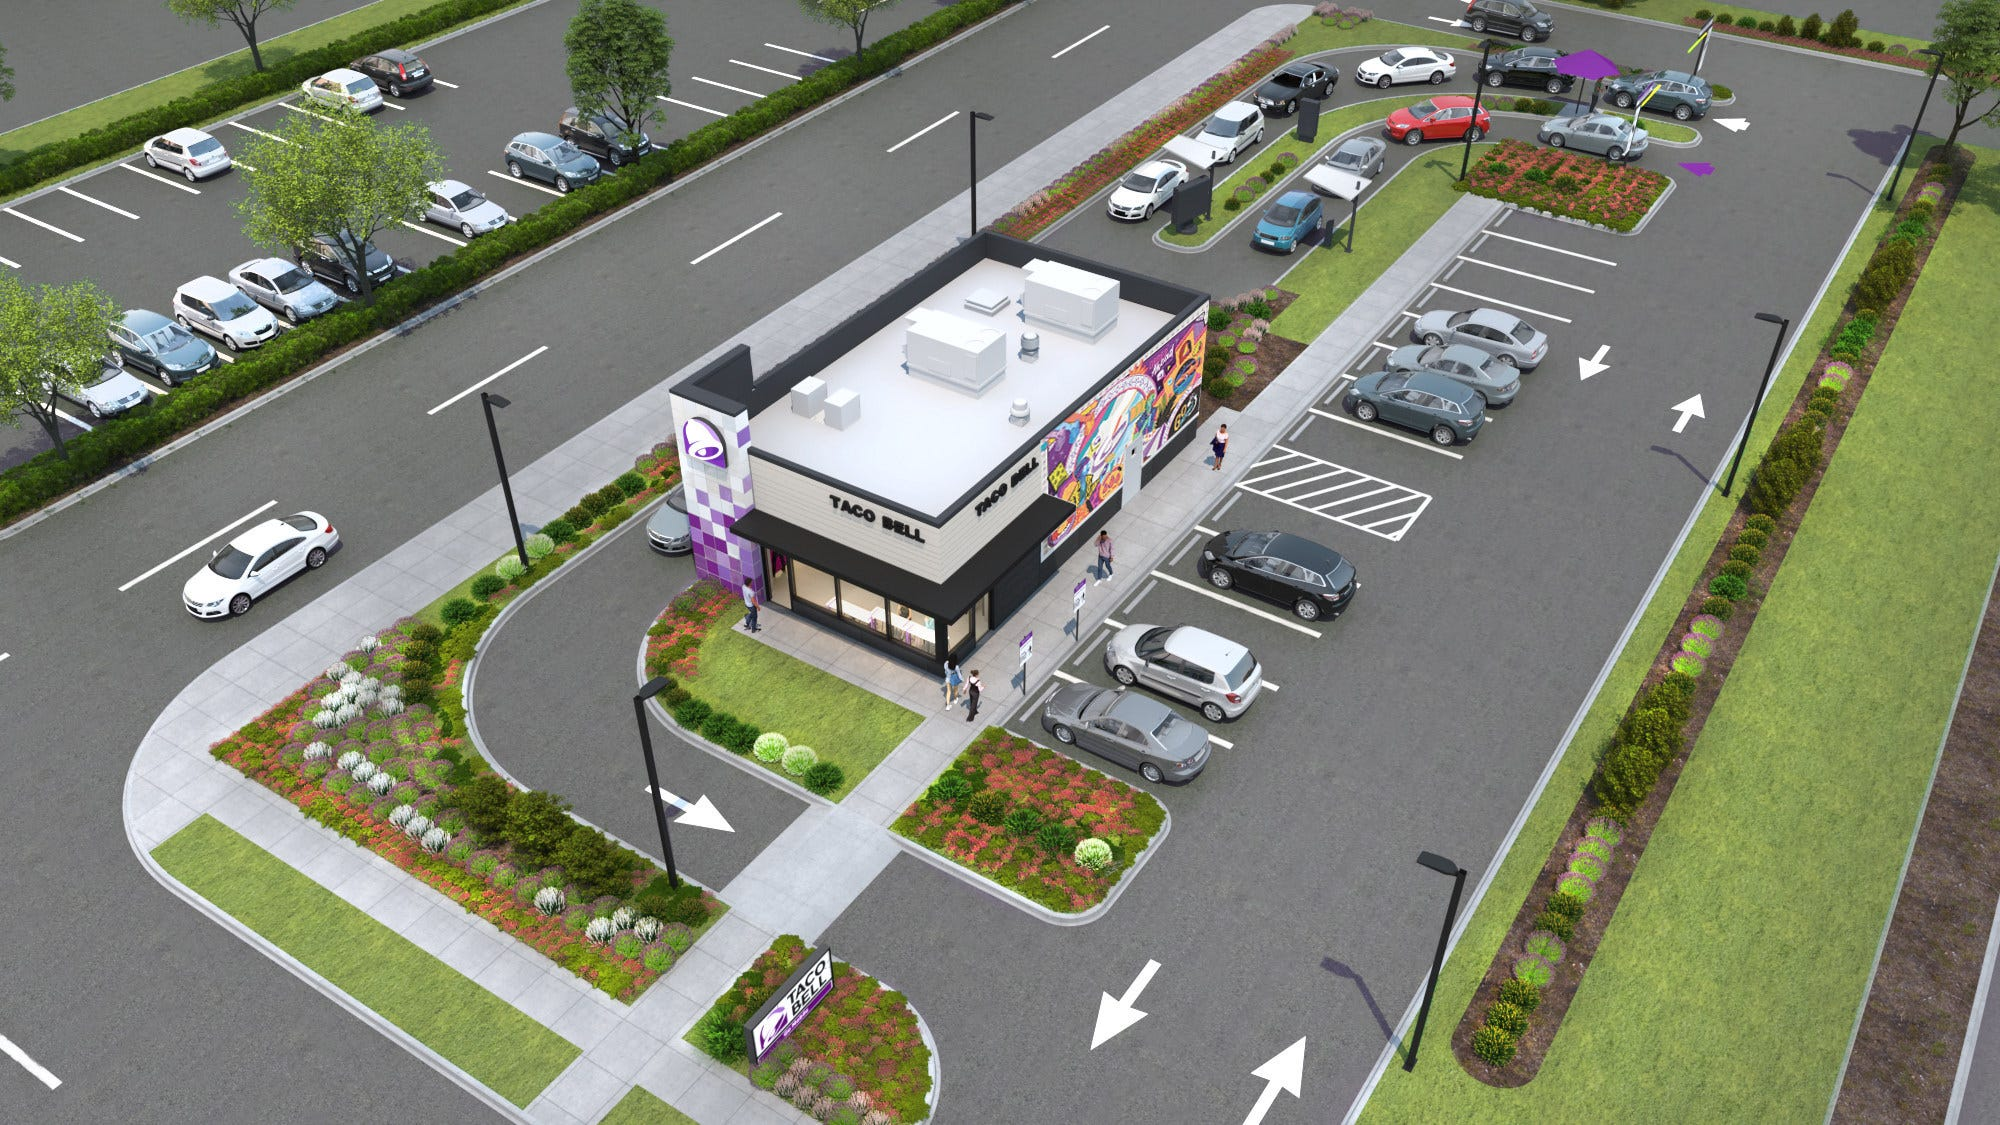 Taco Bell's new restaurant concept is mocked up in a digital drawing.